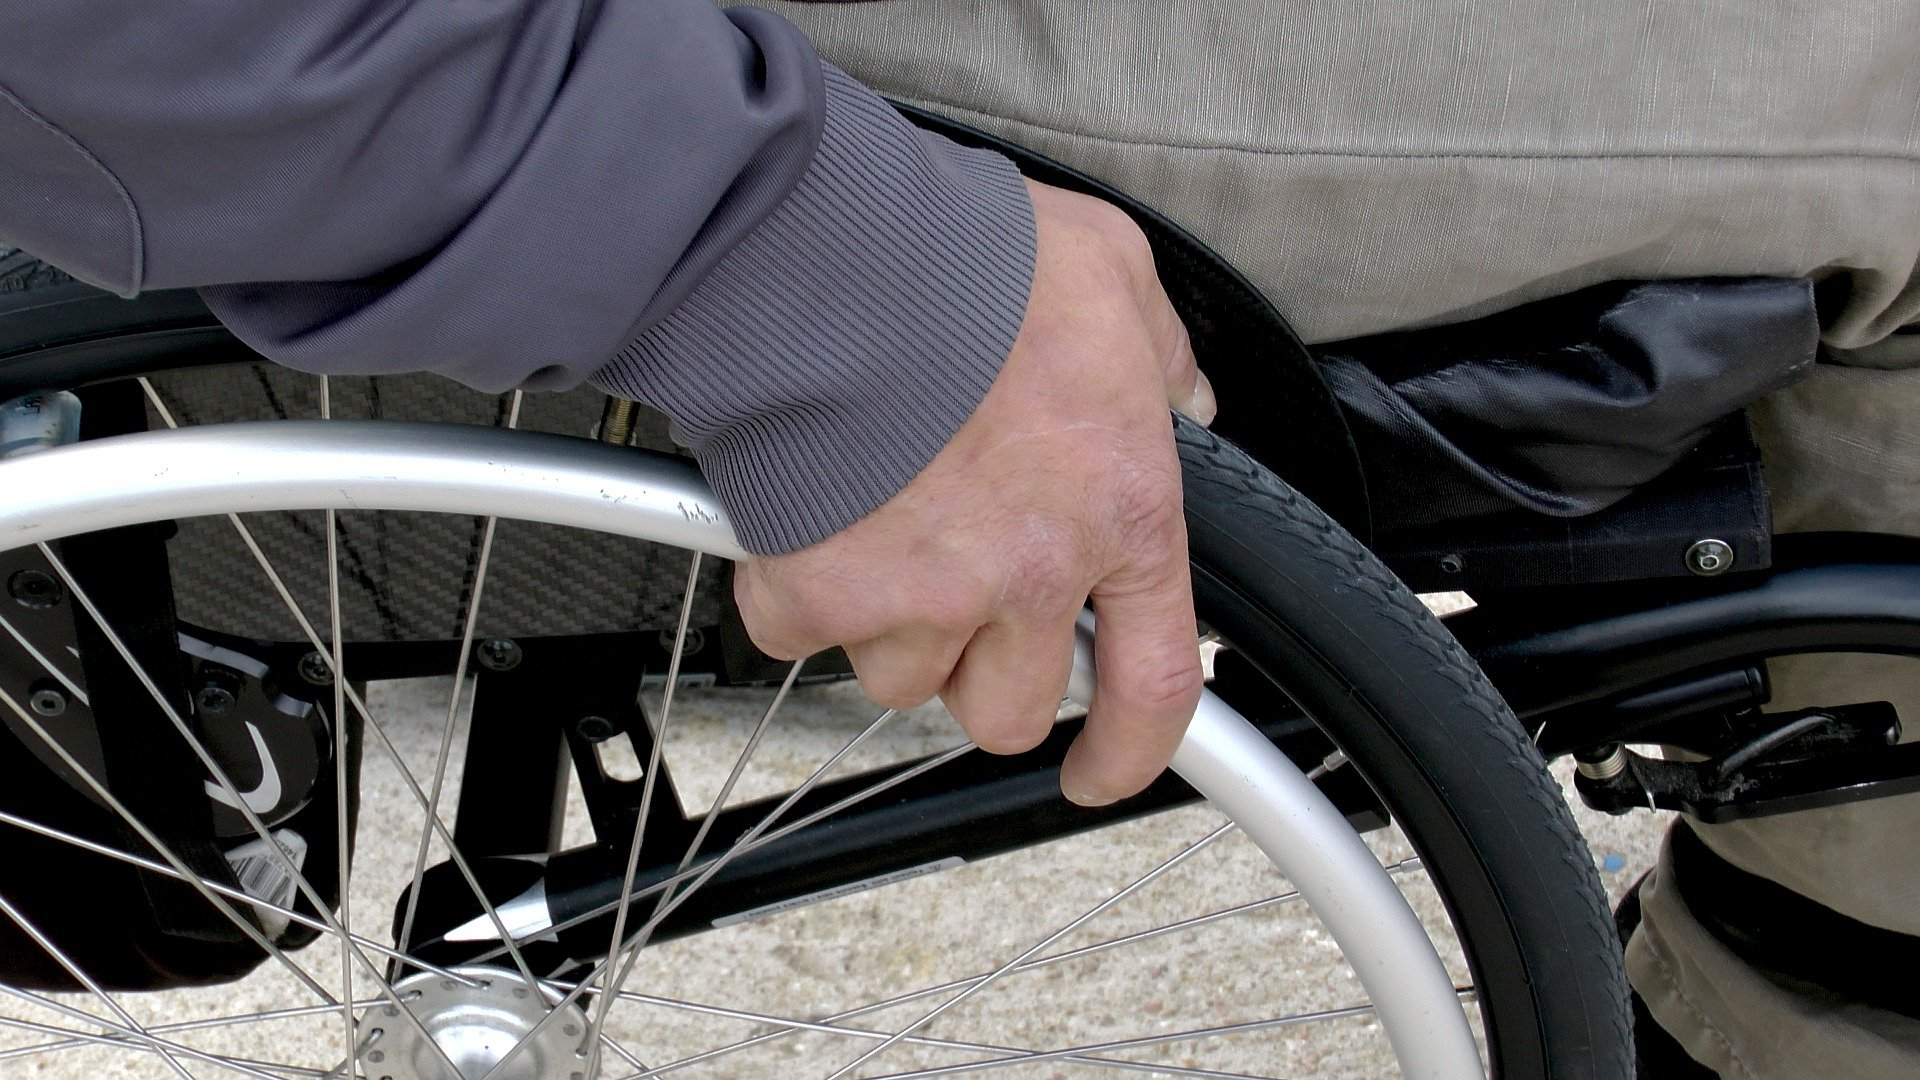 improve wheelchair traction and tyre pressure